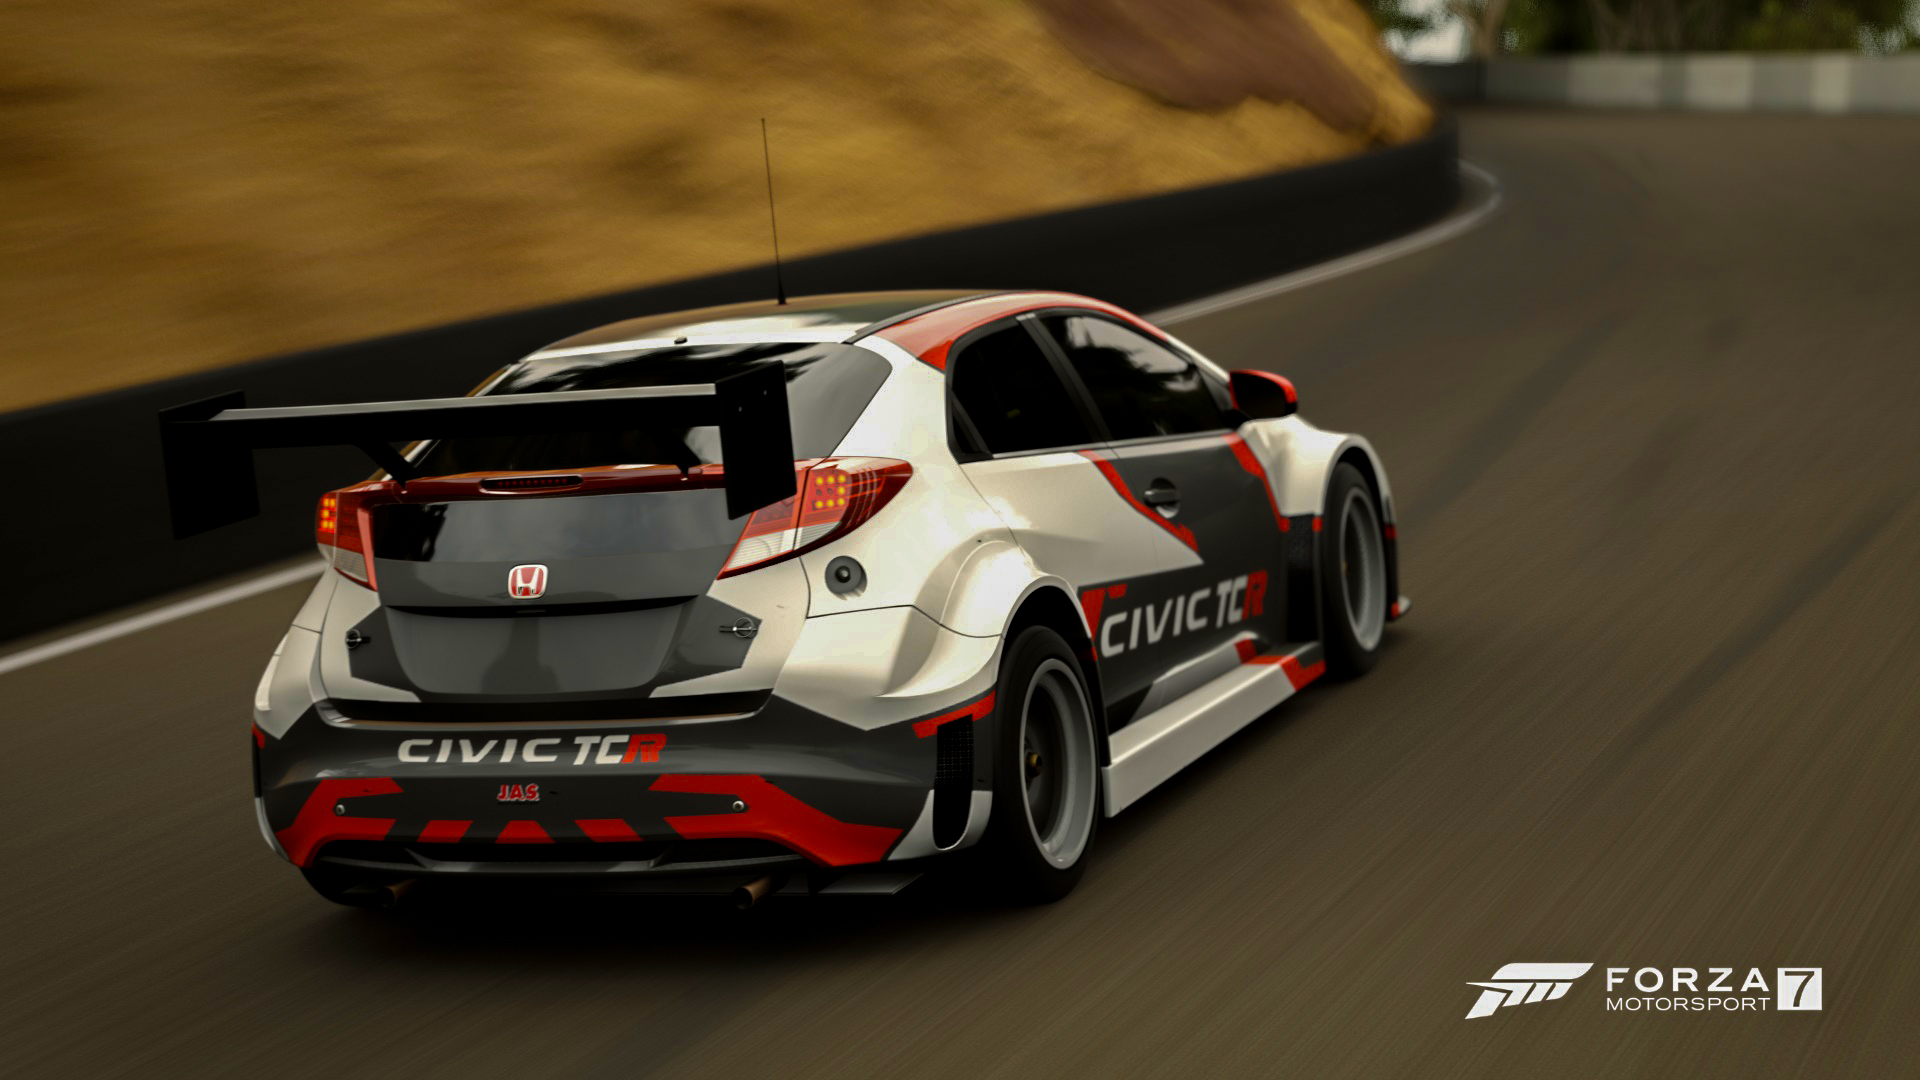 Facr stickers car 2014 zengo motorsport civic wtcc file name 2018 civic tcr category race prize car 69 ford mustang boss 302 fe